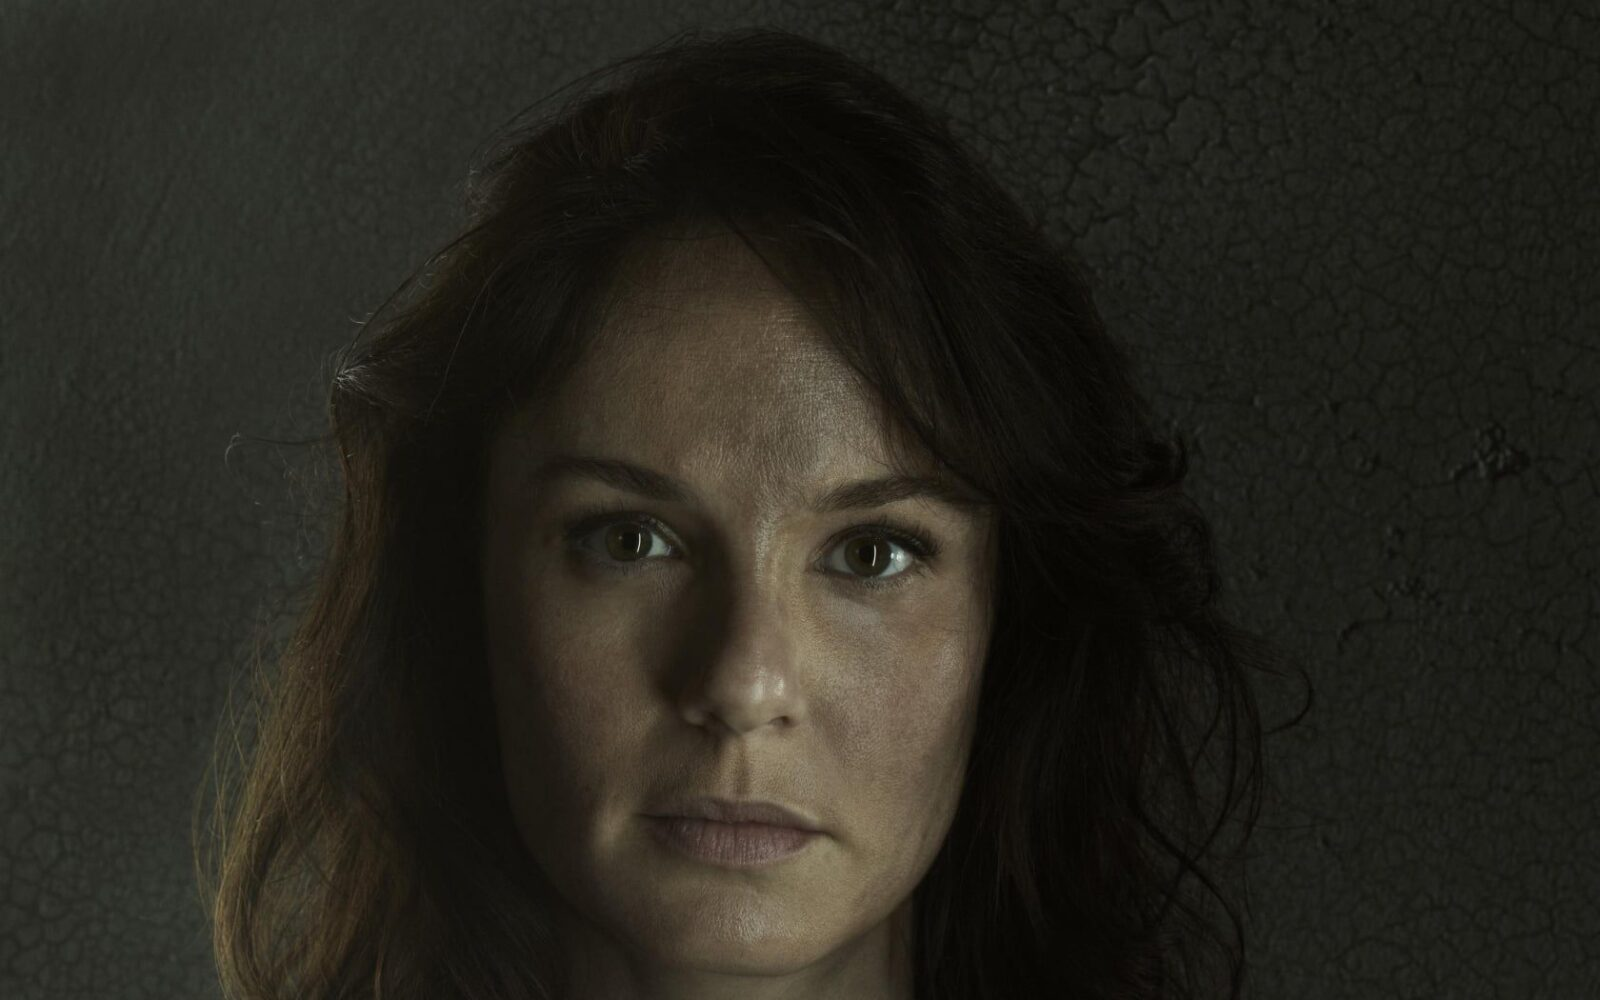 The walking Dead Sarah Wayne Callies High Quality wallpapers